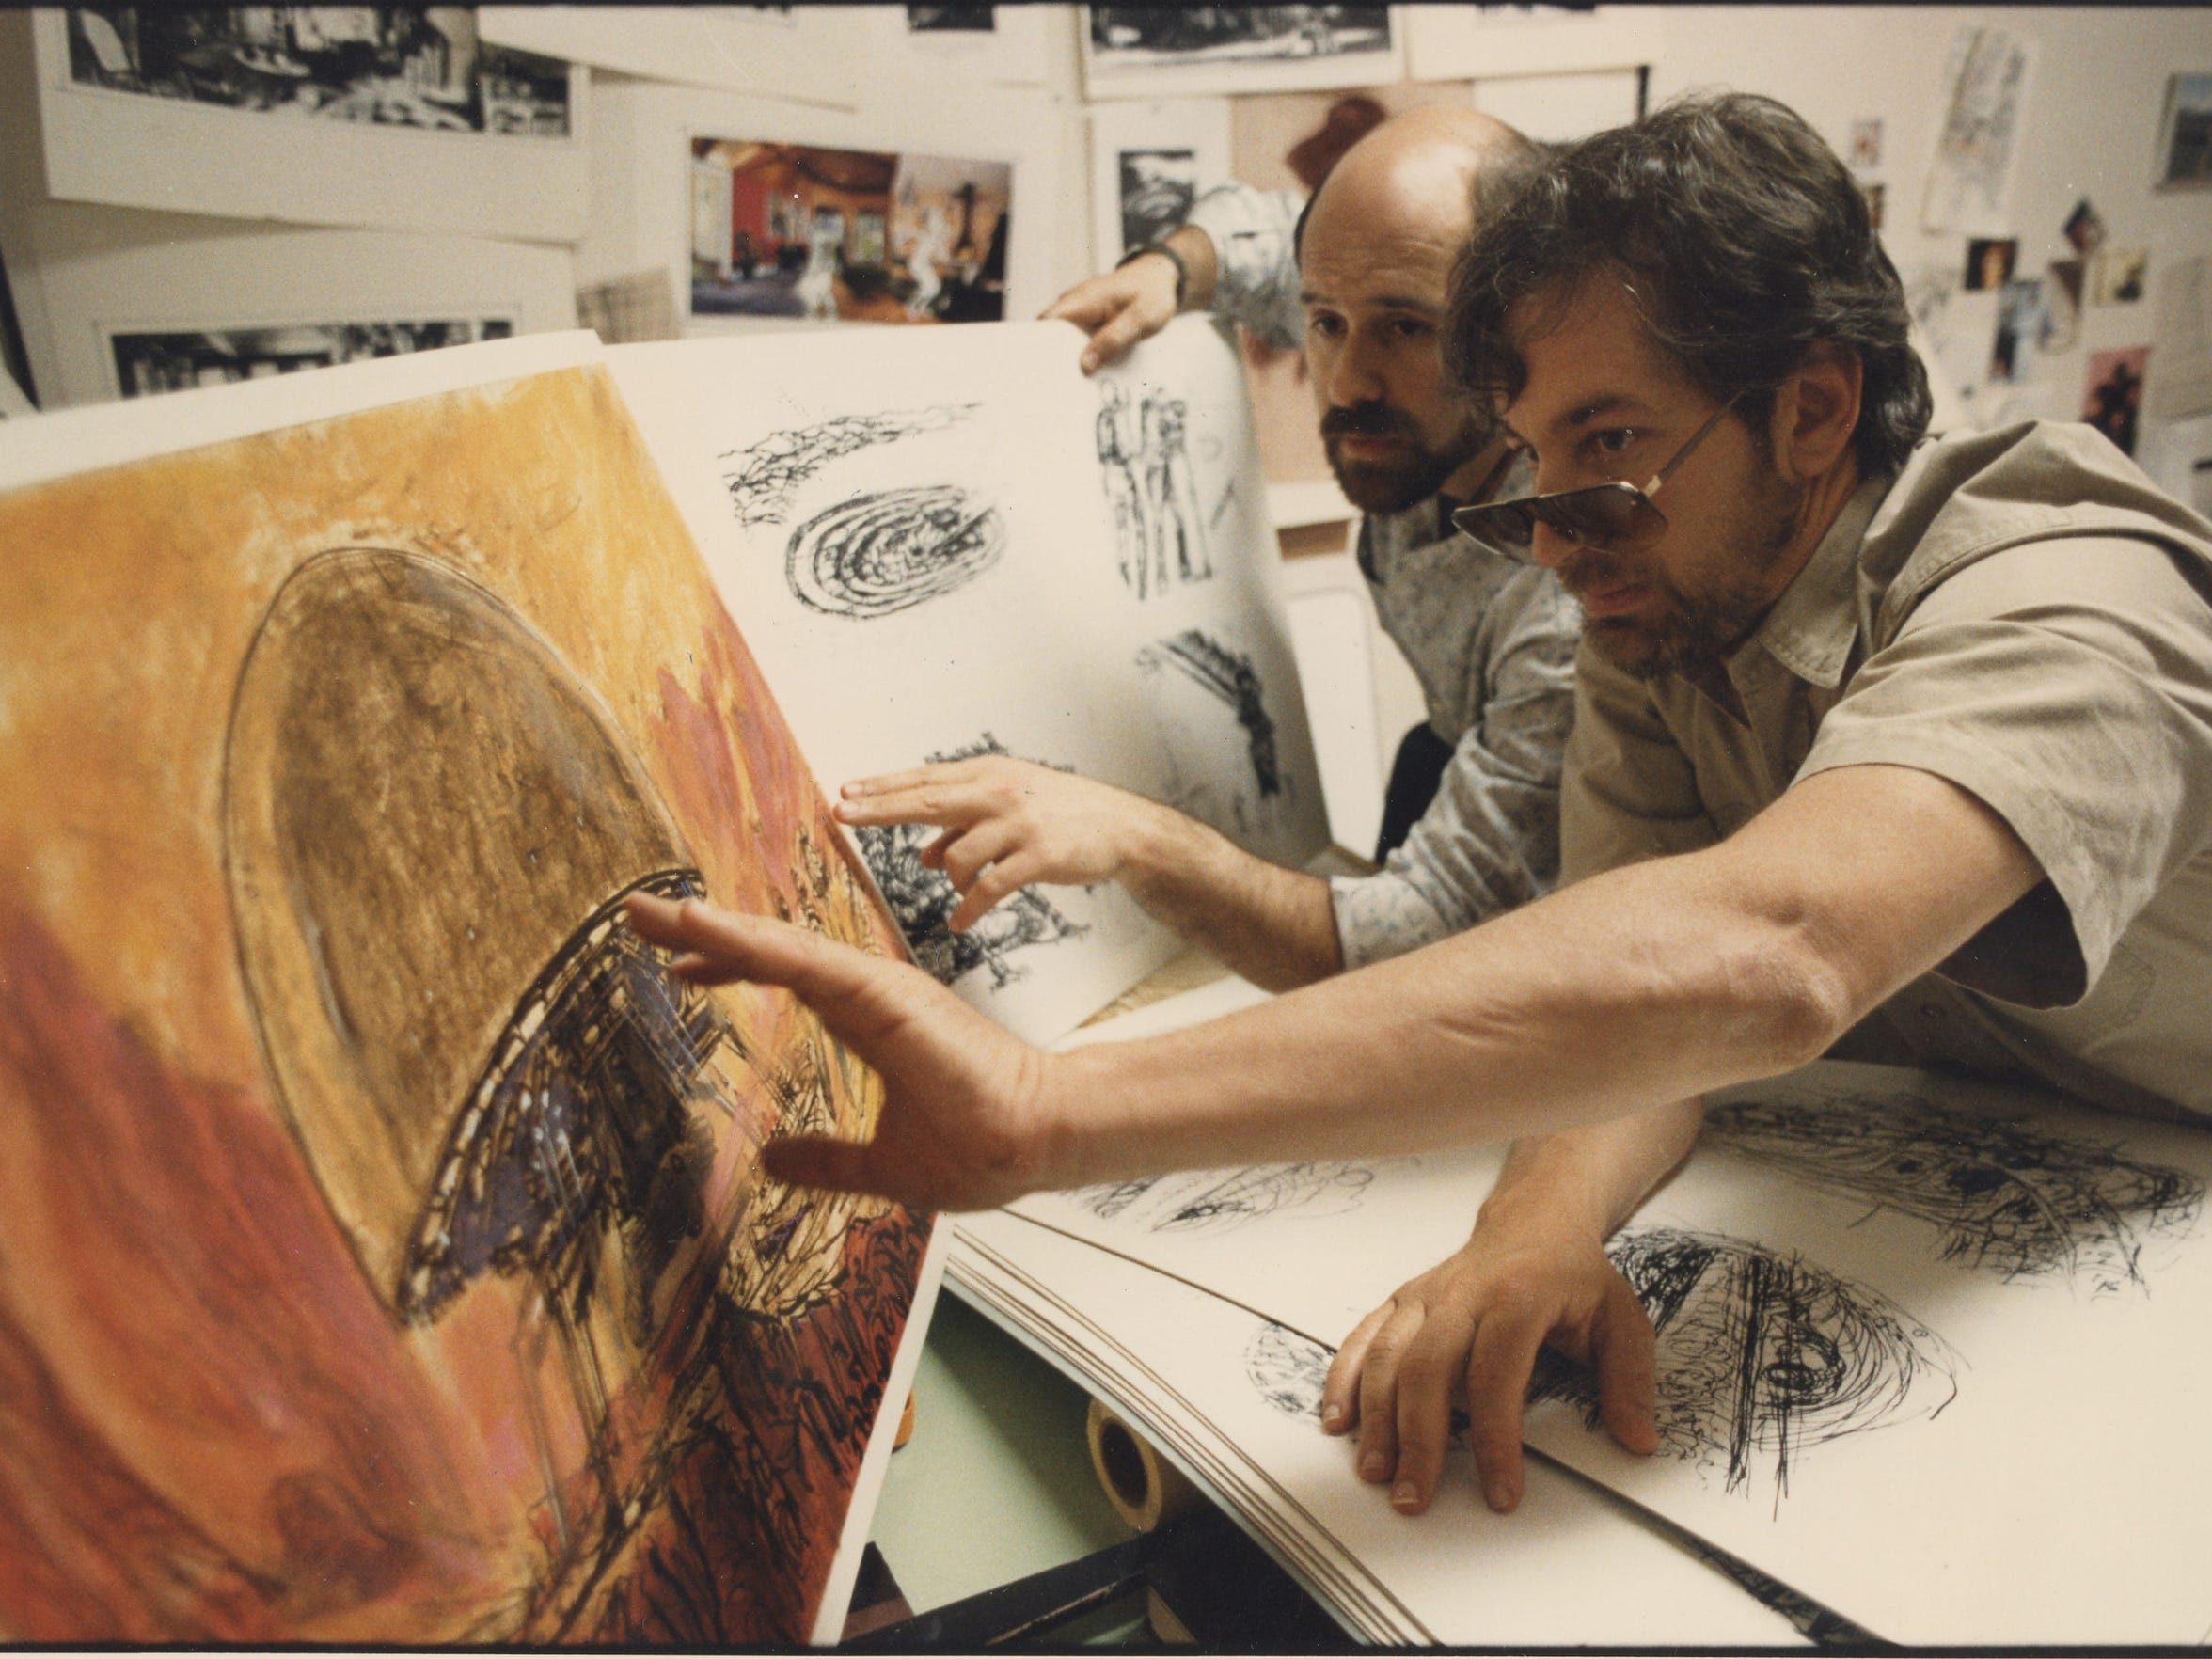 David Vogel and Steven Spielberg discuss an idea on